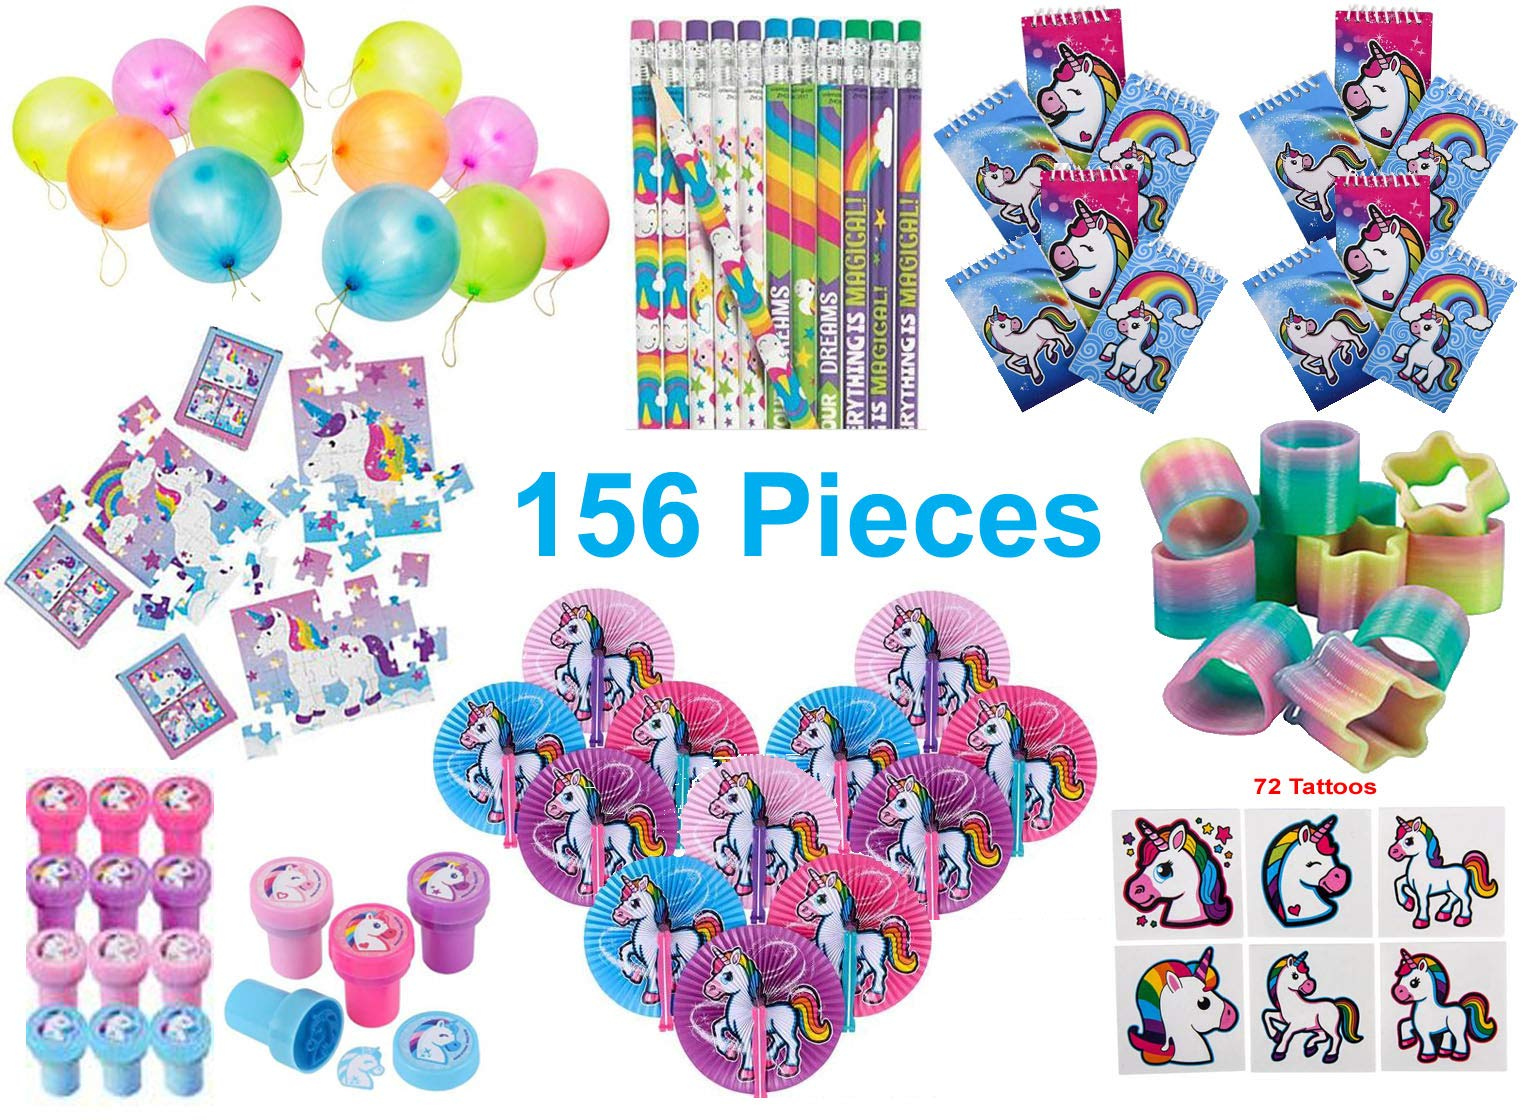 Unicorn Party Favors, Birthday Pack for 12 Kids - 156 Pieces - Toys and Novelty Items - Notebooks, Pencils, Stampers, 24-Piece Puzzles, Folding Fans, Rainbow Mini Plastic Slinkys and Punch Balloons, 72 Tattoos